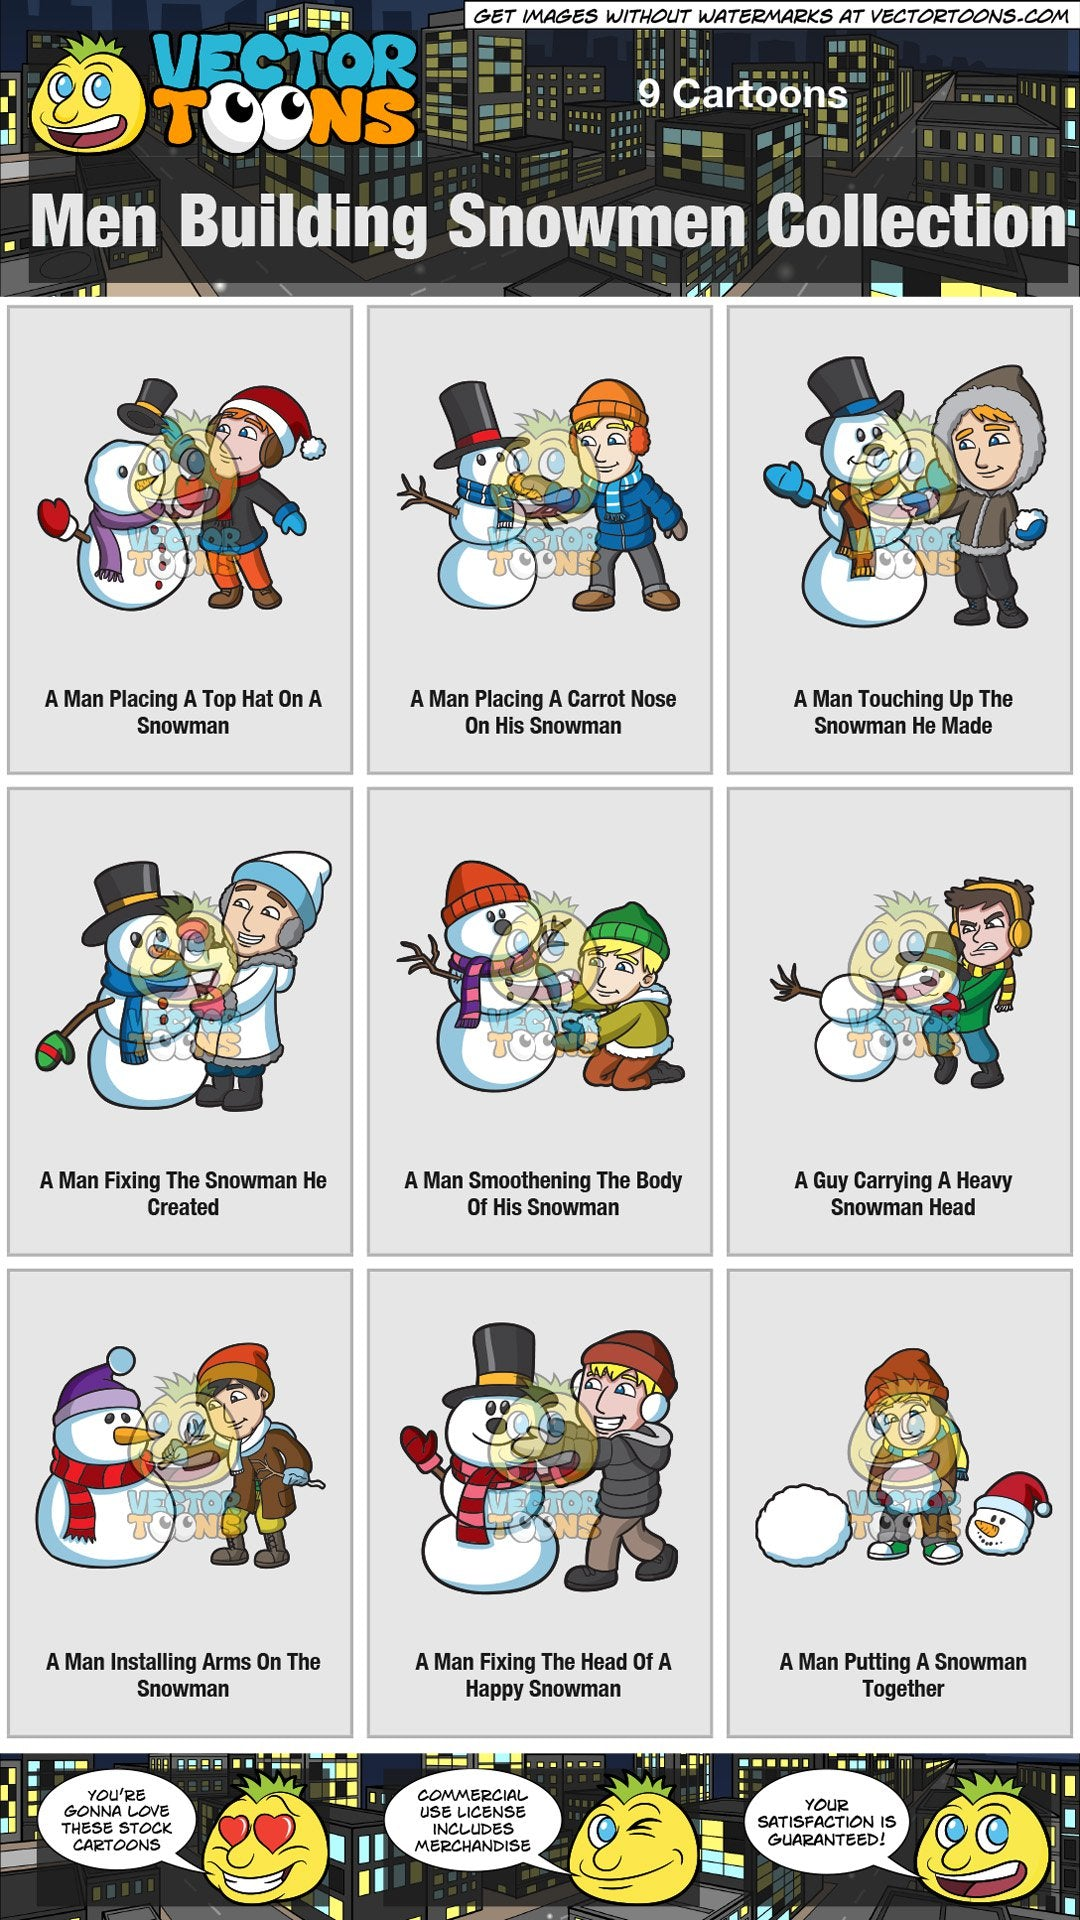 Men Building Snowmen Collection